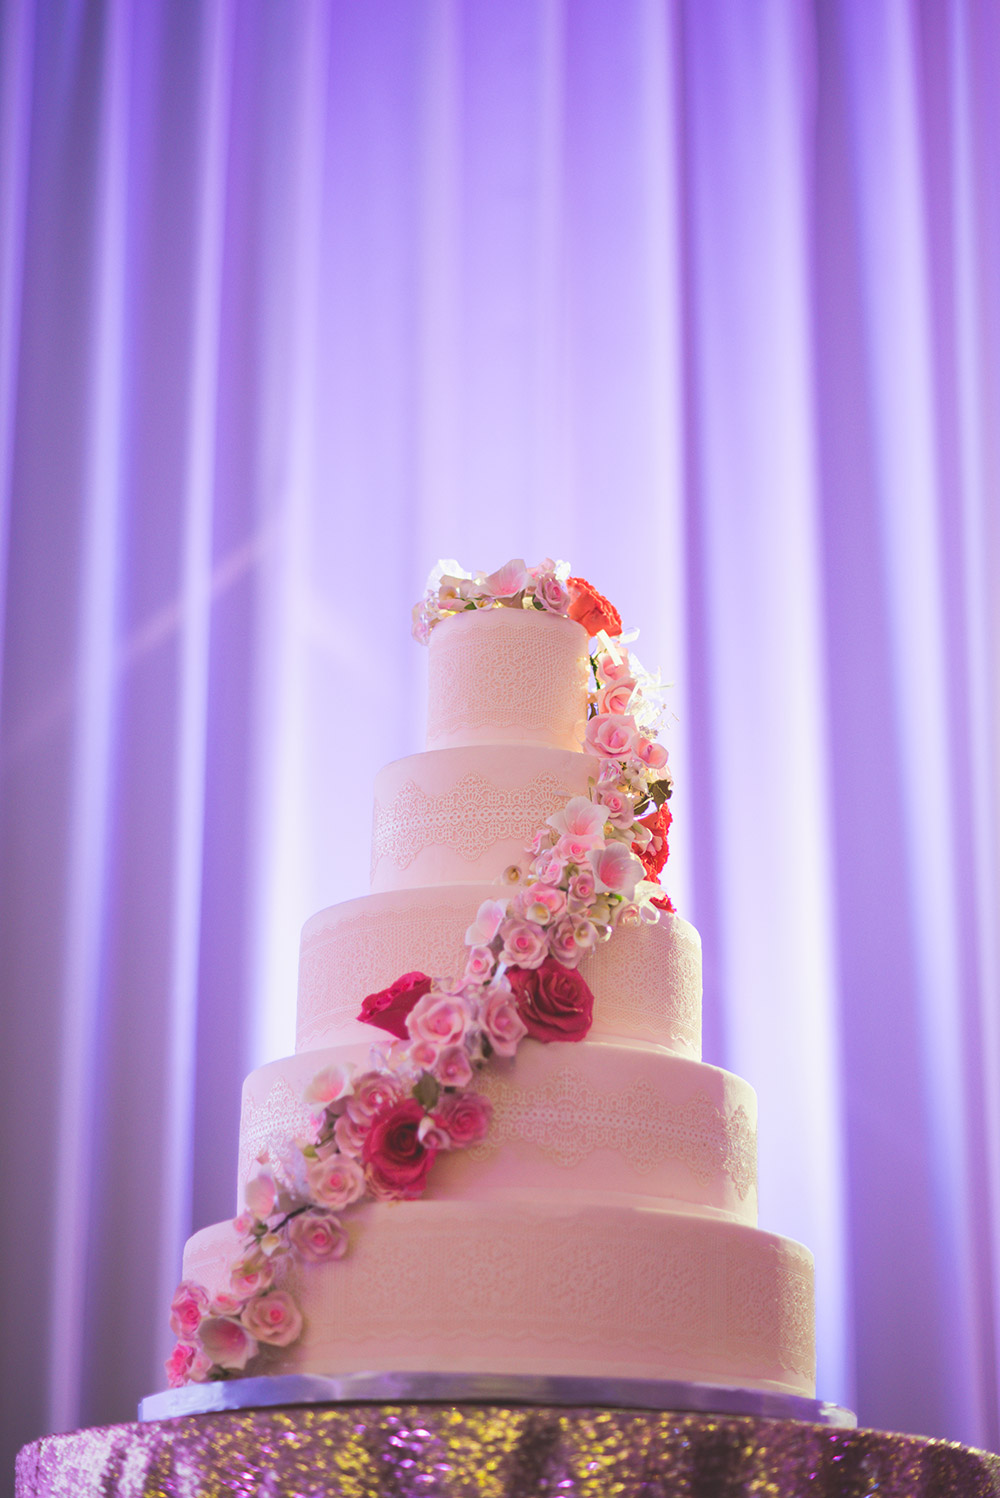 White floral wedding cake. Jon Low Photography. www.theweddingnotebook.com